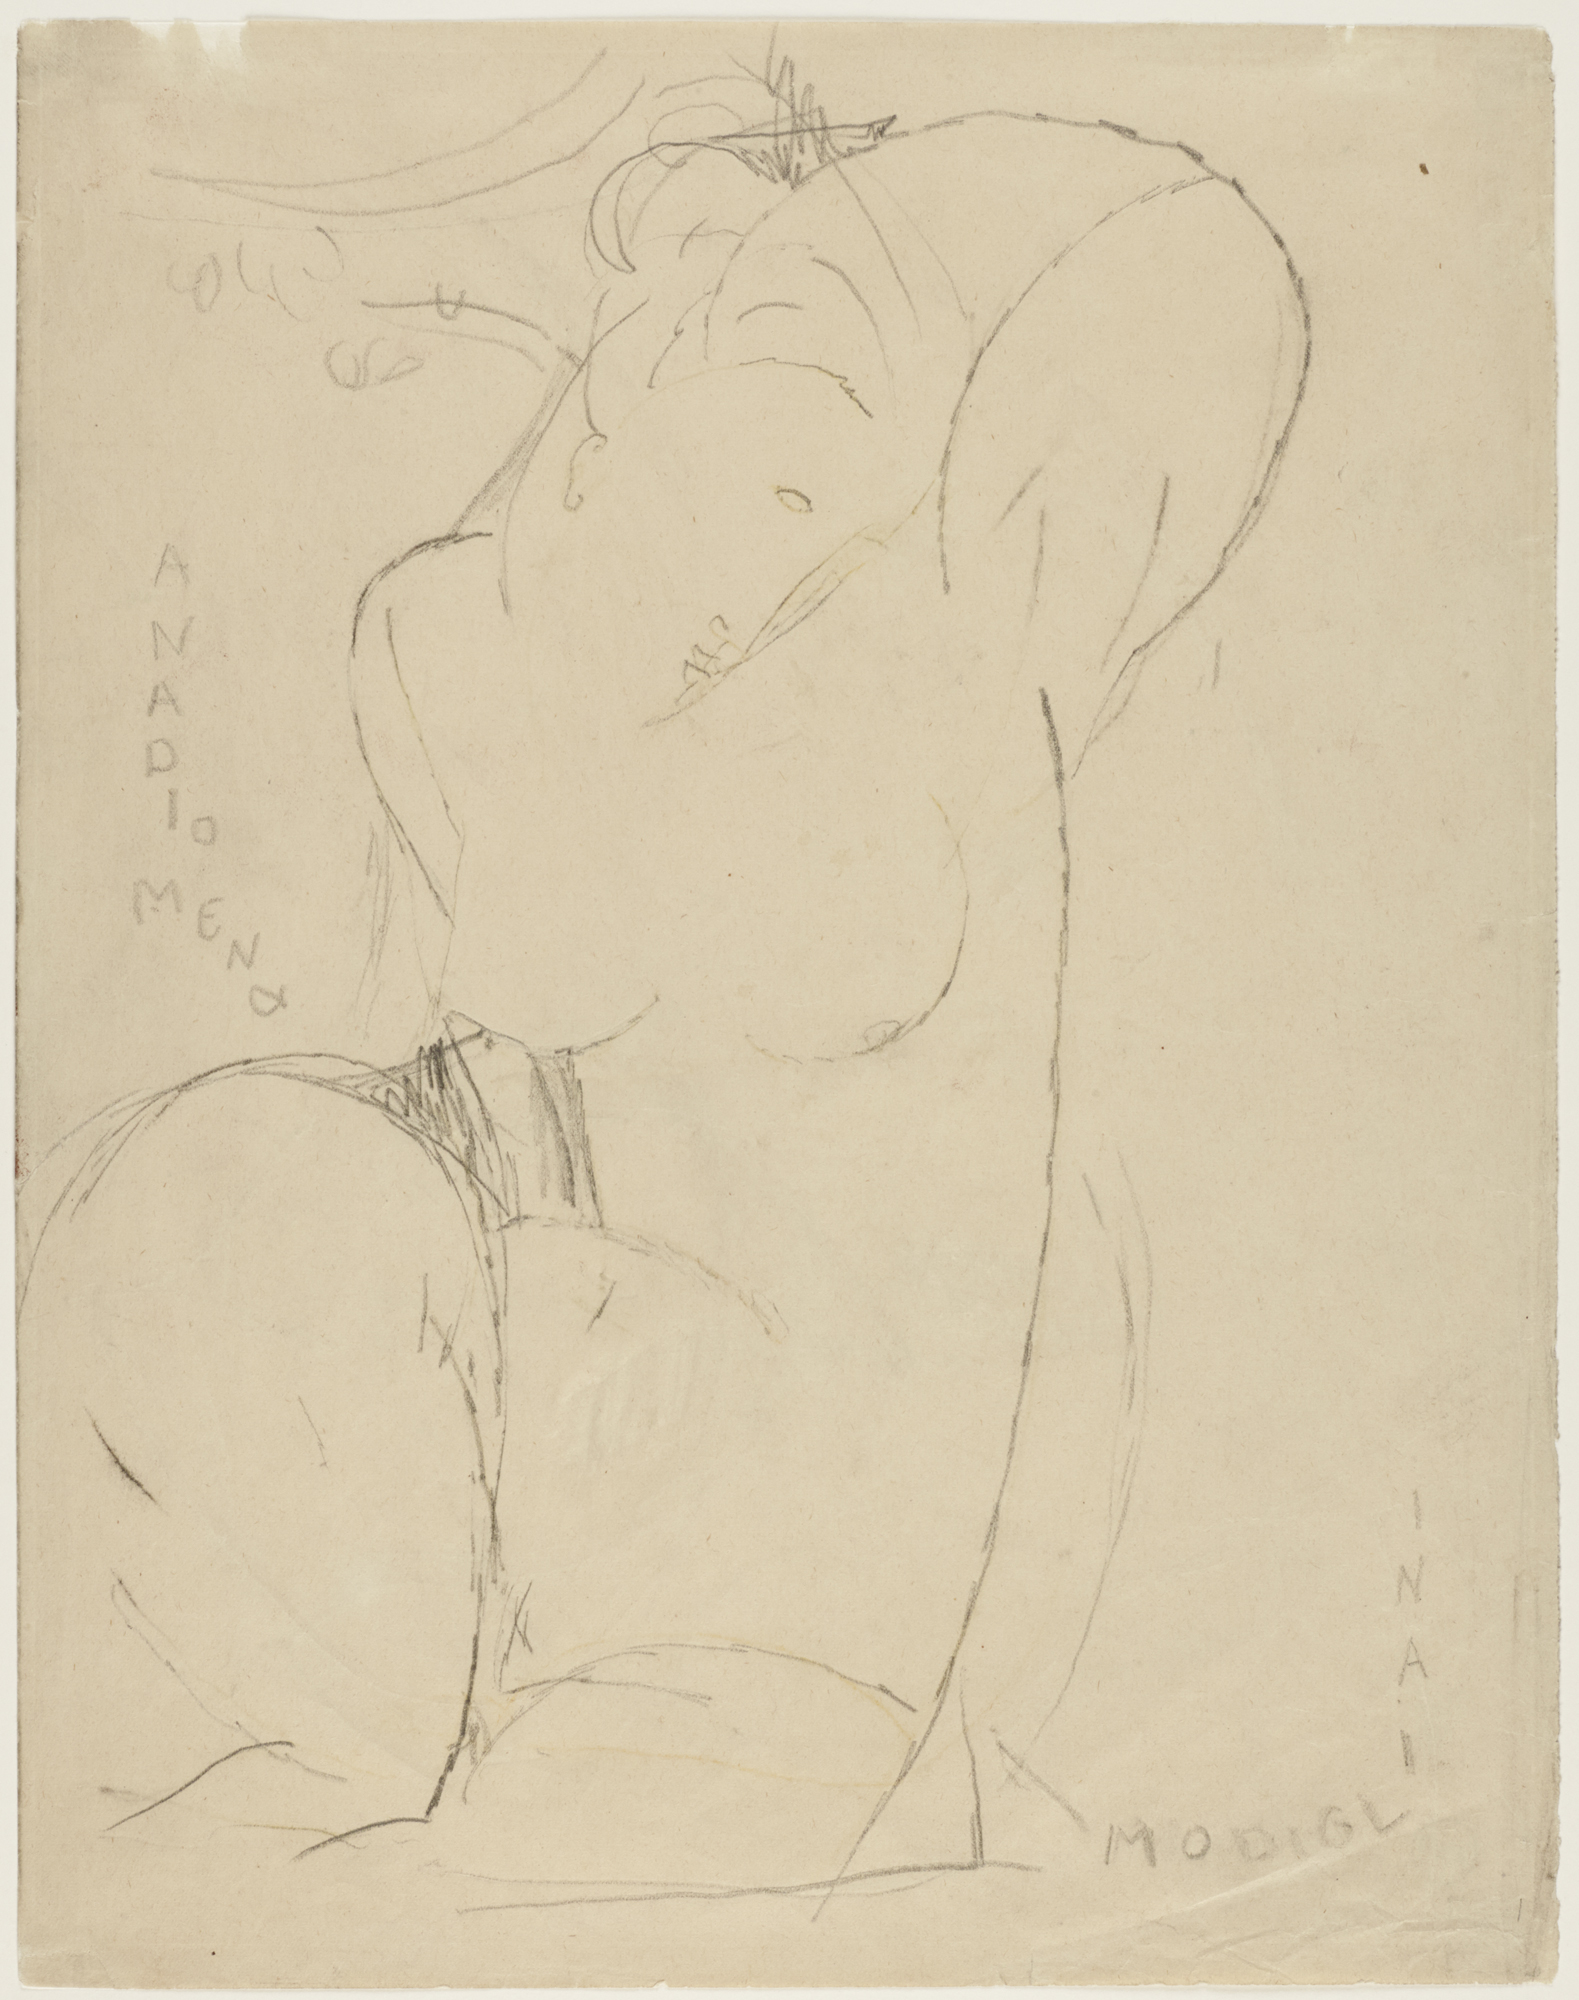 Amedeo Modigliani (Italian, 1884–1920), Anadiomena, ca. 1914–15. Graphite with traces of yellow pencil on thin light tan wove paper, 33.9 x 26.5 cm. Bequest of Dan Fellows Platt, Class of 1895 (x1948-390)